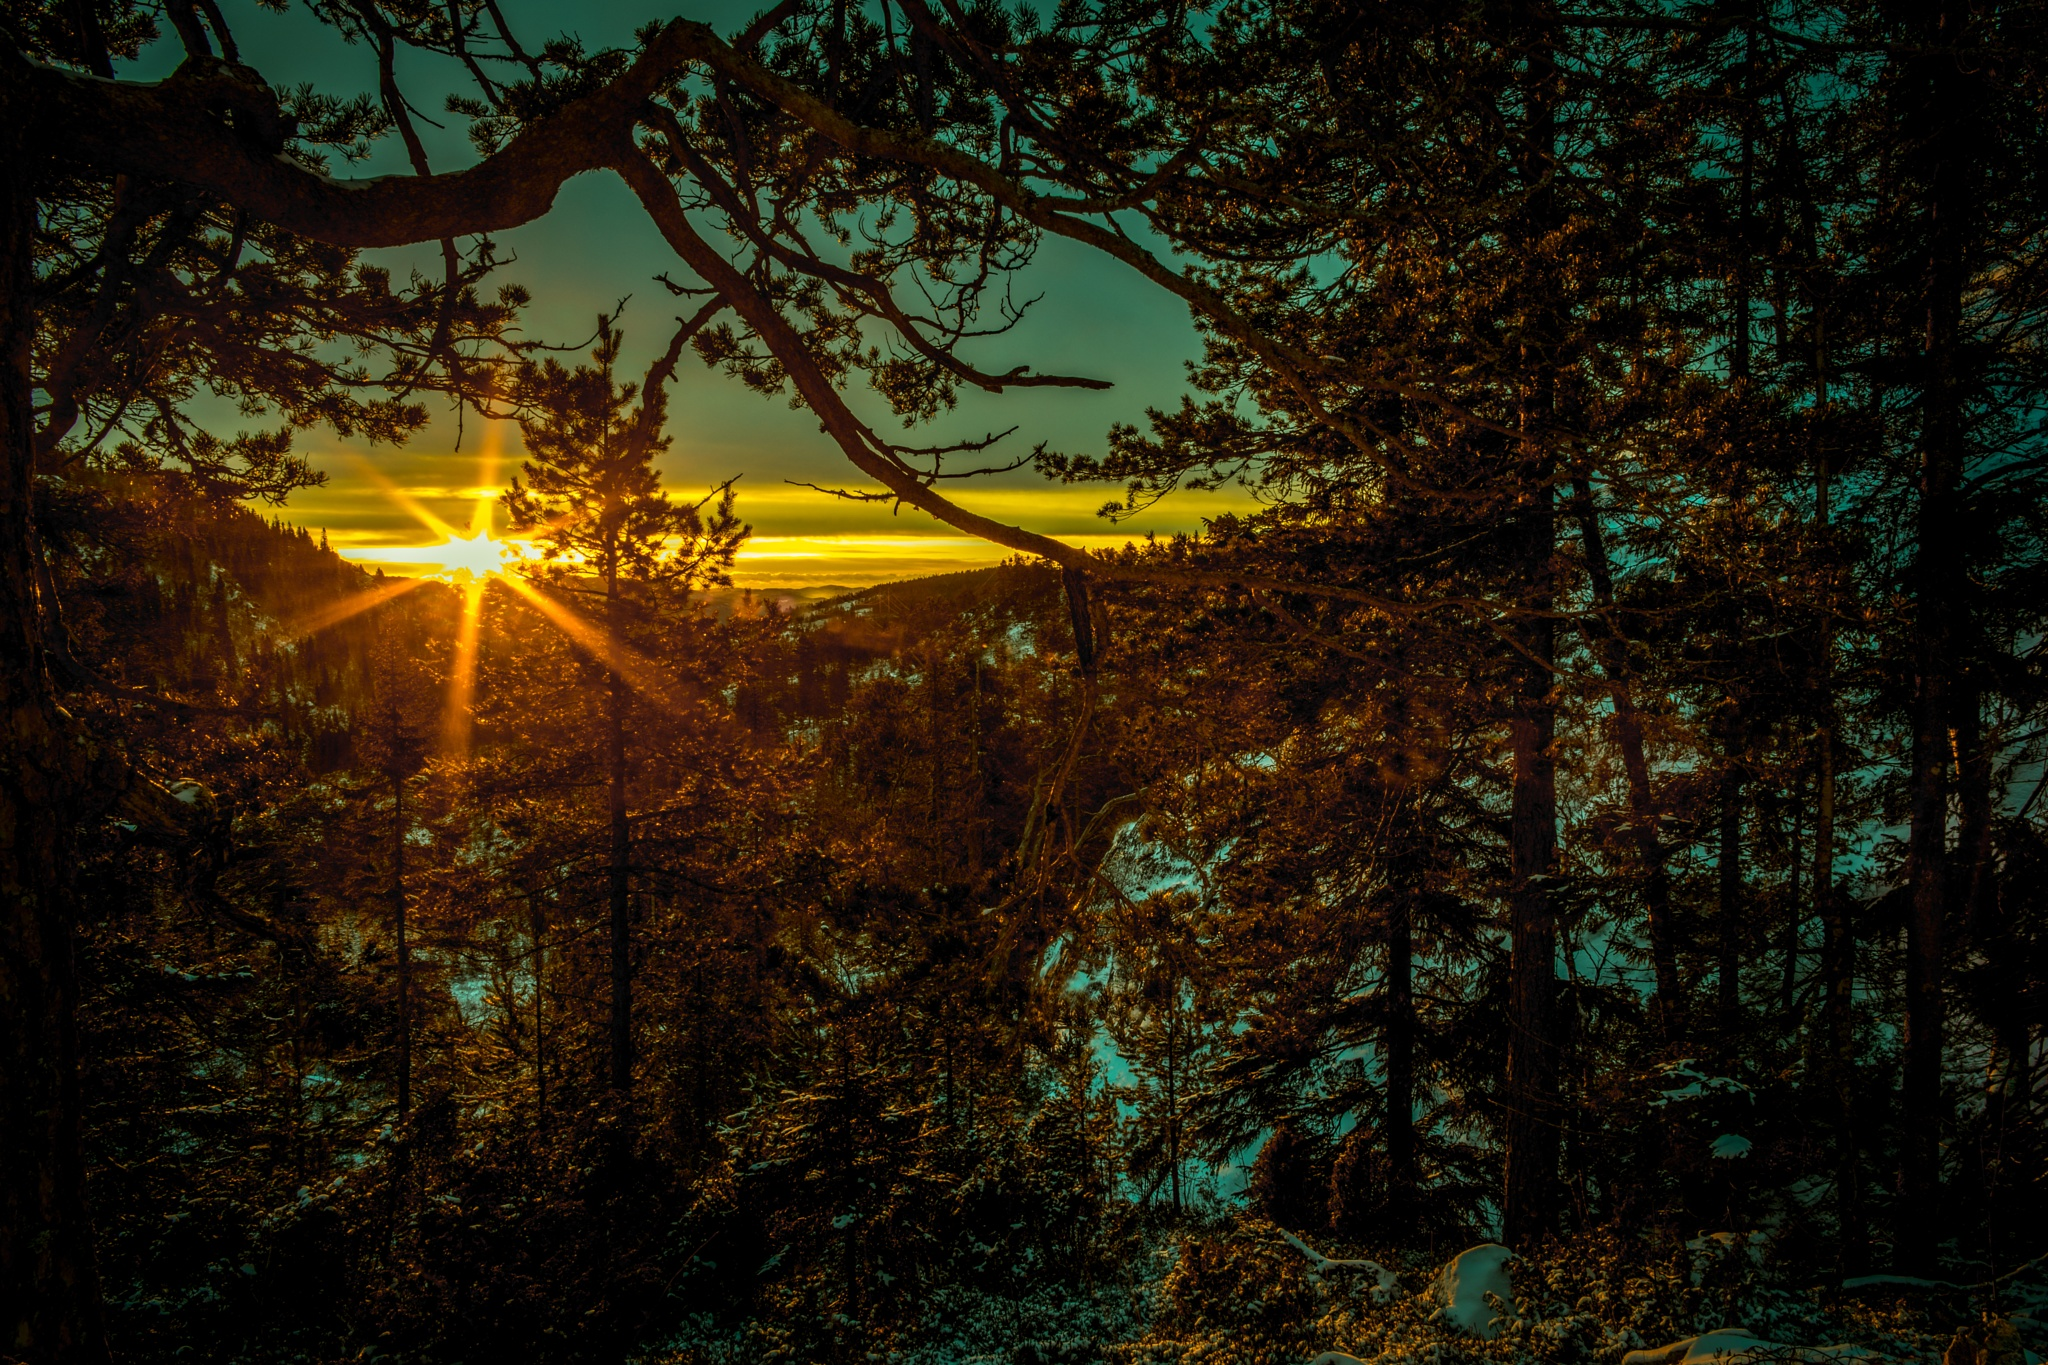 Blue turns to Golden by Ole Morten Eyra